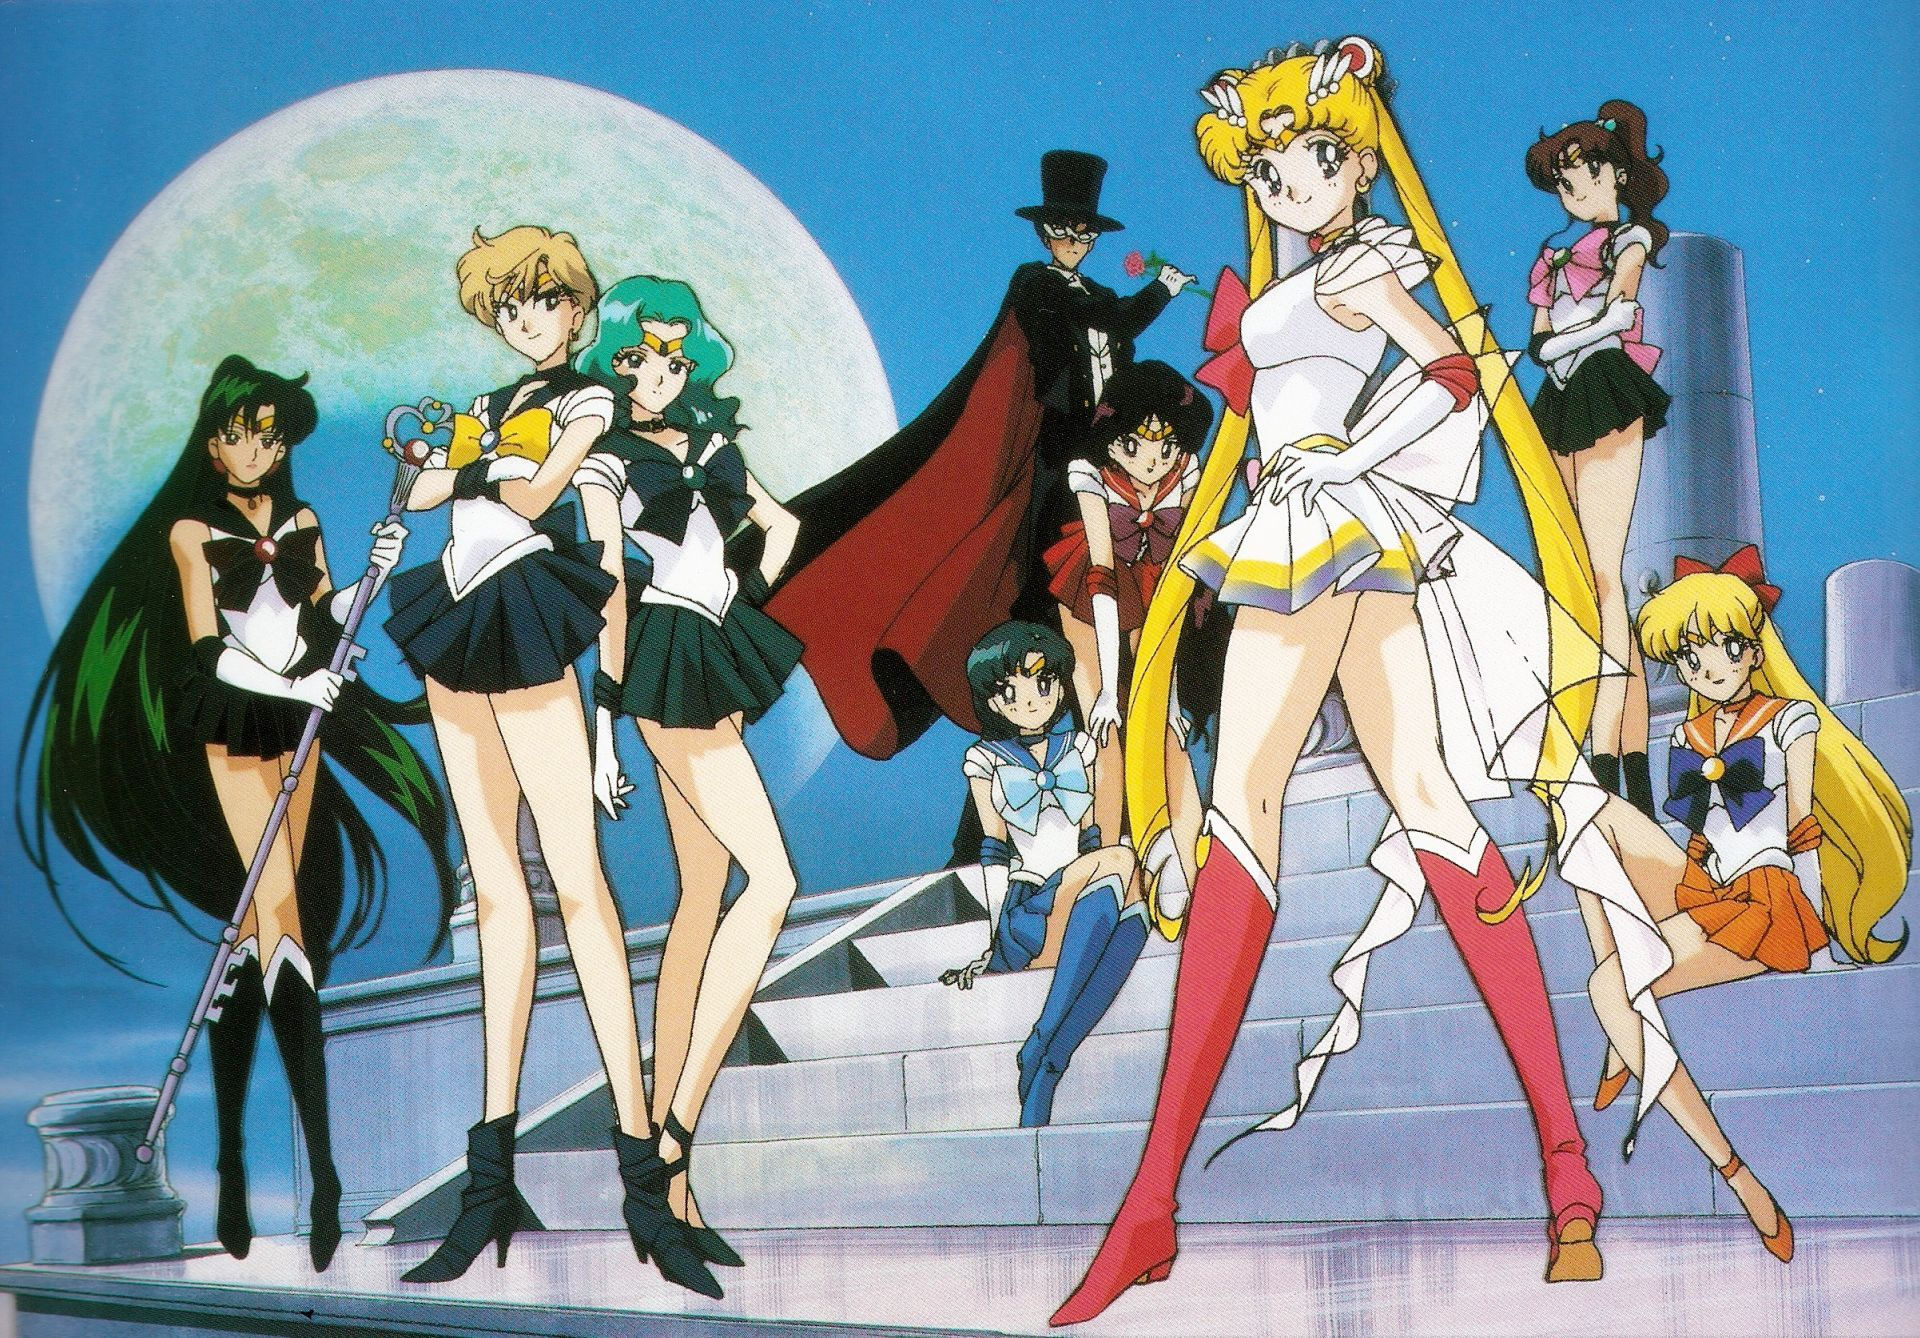 Les mangas Sailor Moon disponibles en version digitale